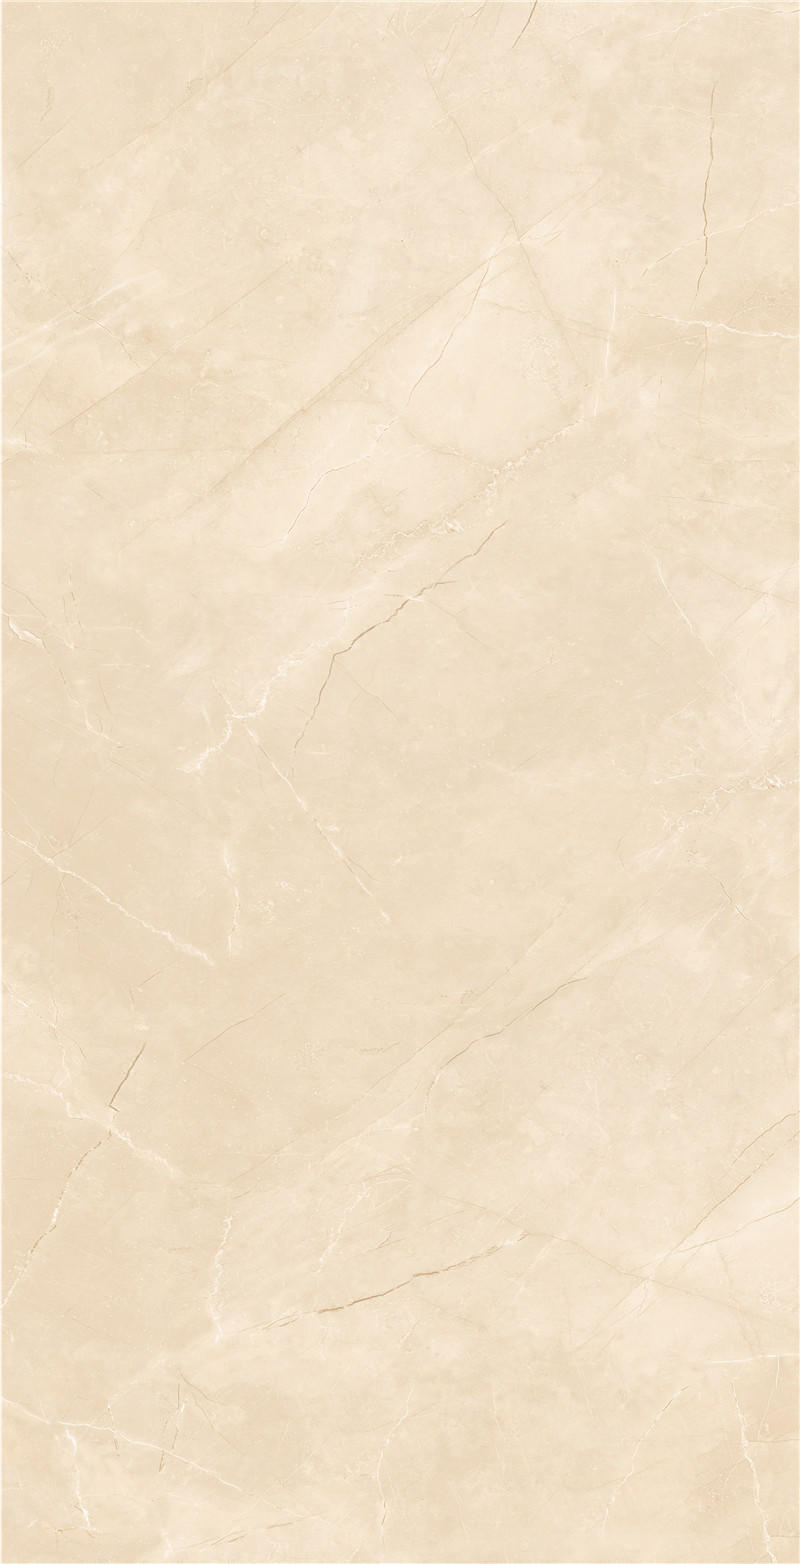 tile effect laminate flooring p158035m dh156r6a07 glazed porcelain tile surface LONGFAVOR Brand